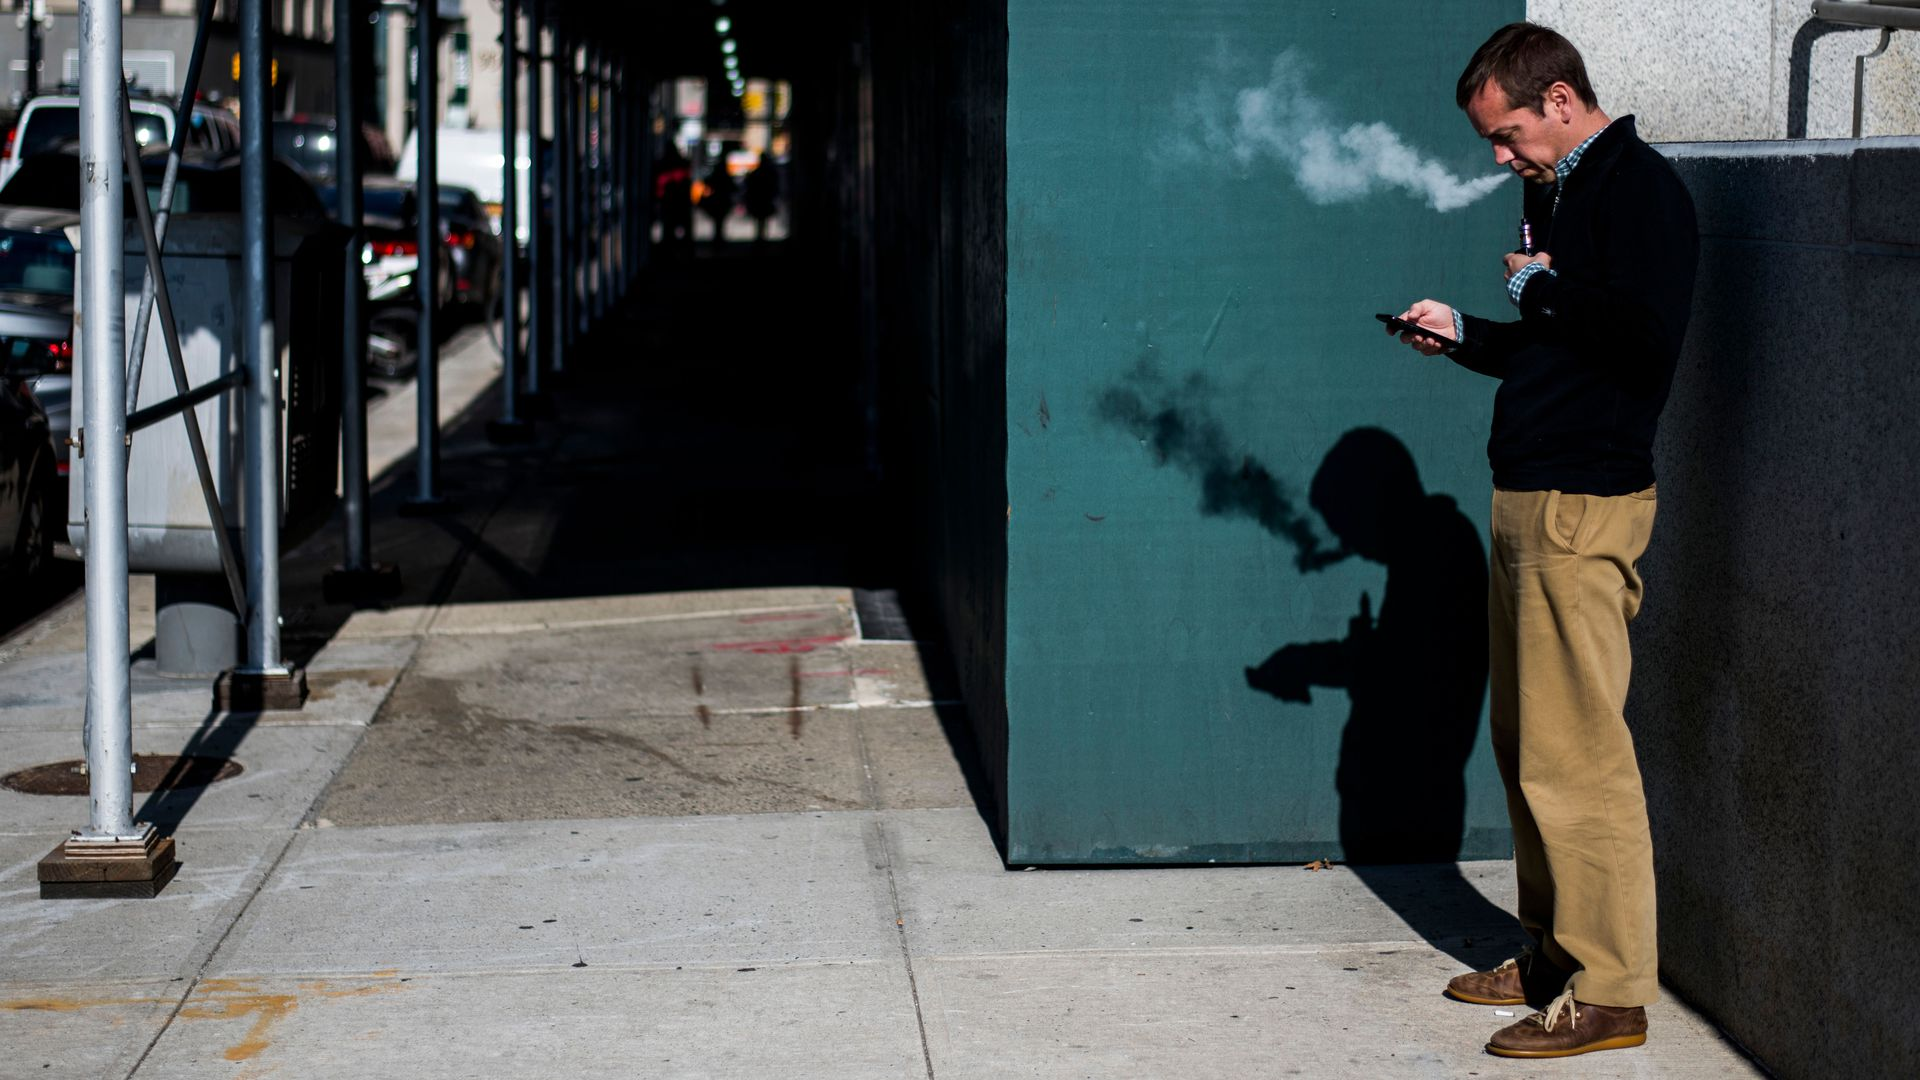 In this image, a man stands and looks at his phone while vaping on the sidewalk.